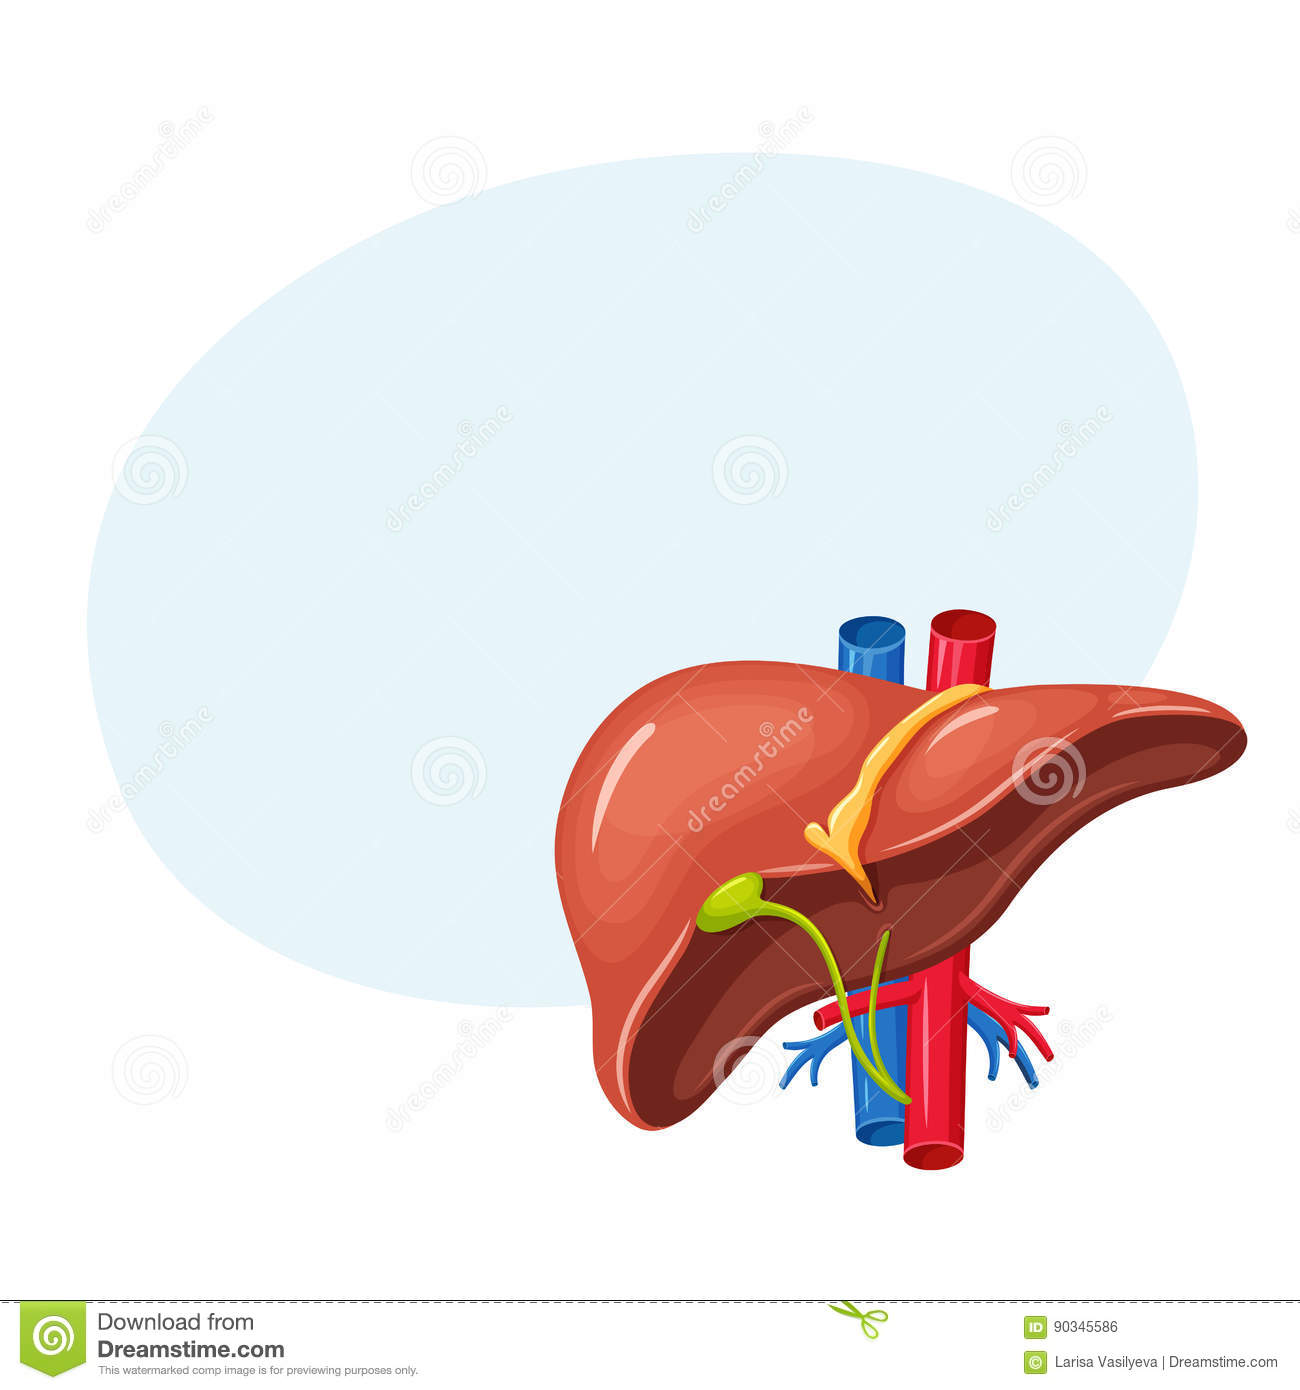 Human liver anatomy stock vector. Illustration of gall - 90345586